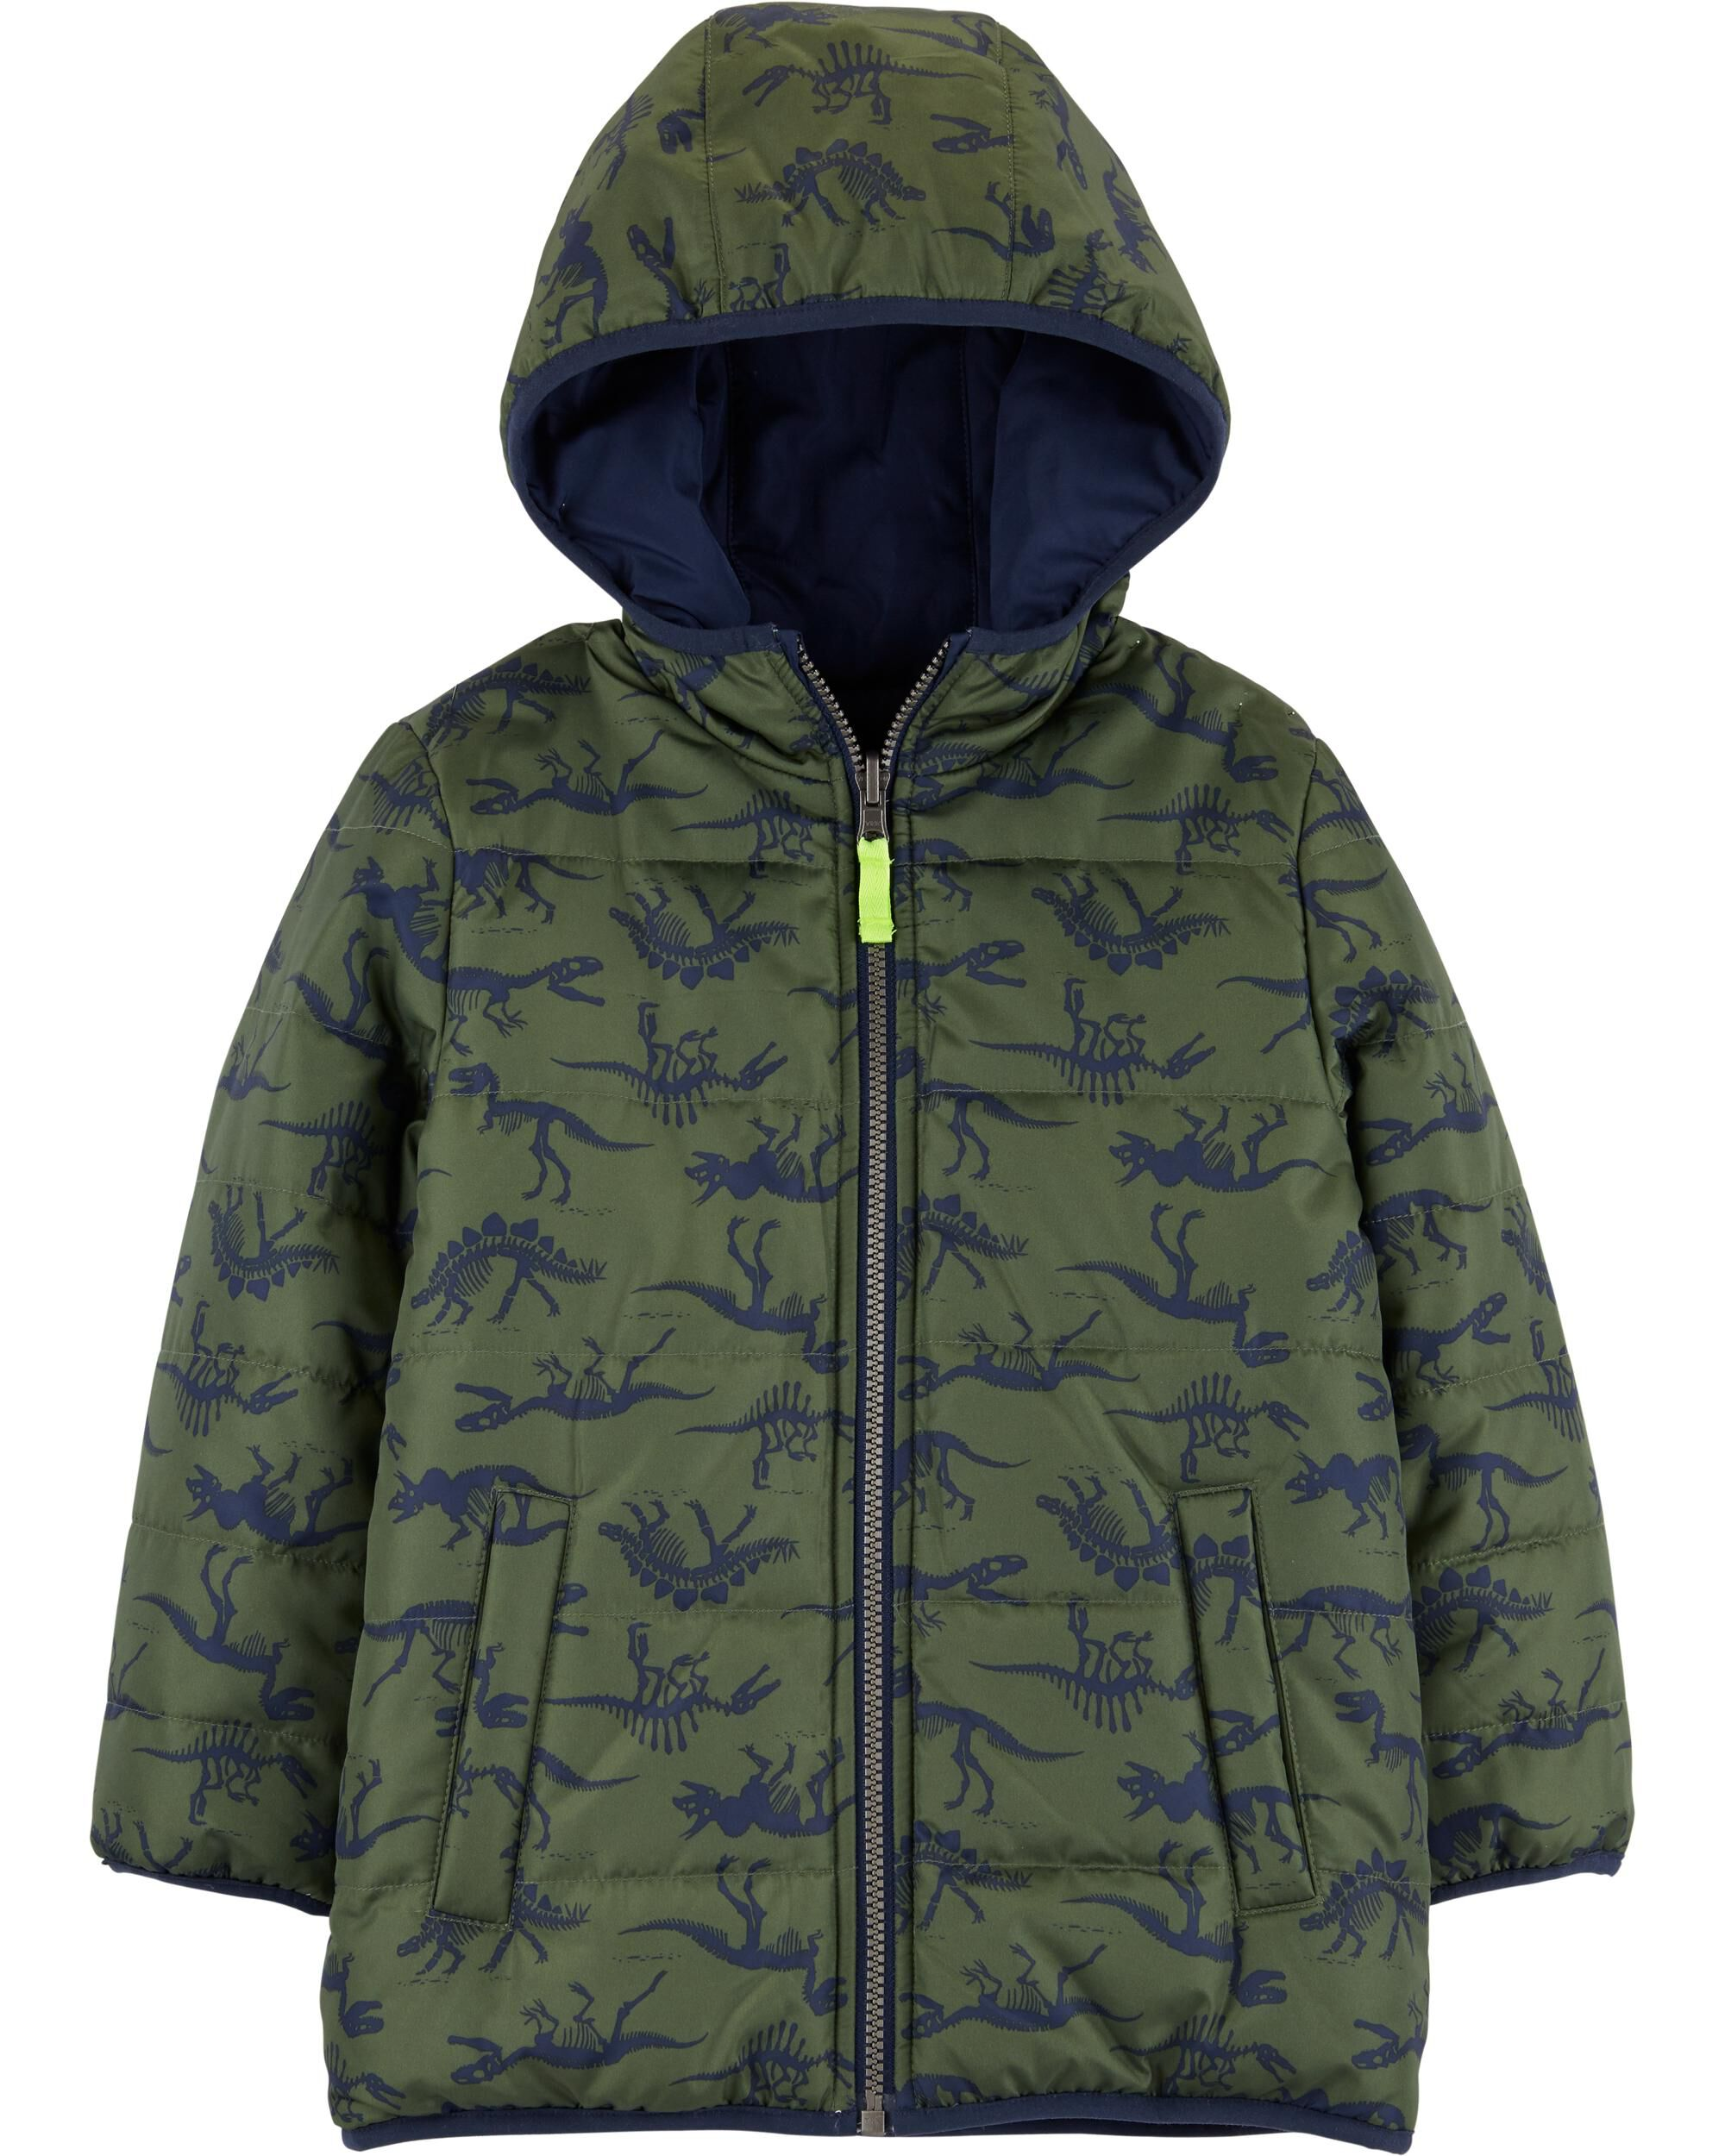 3T Carters Little Boys Green /& Blue Bubble Outerwear Coat